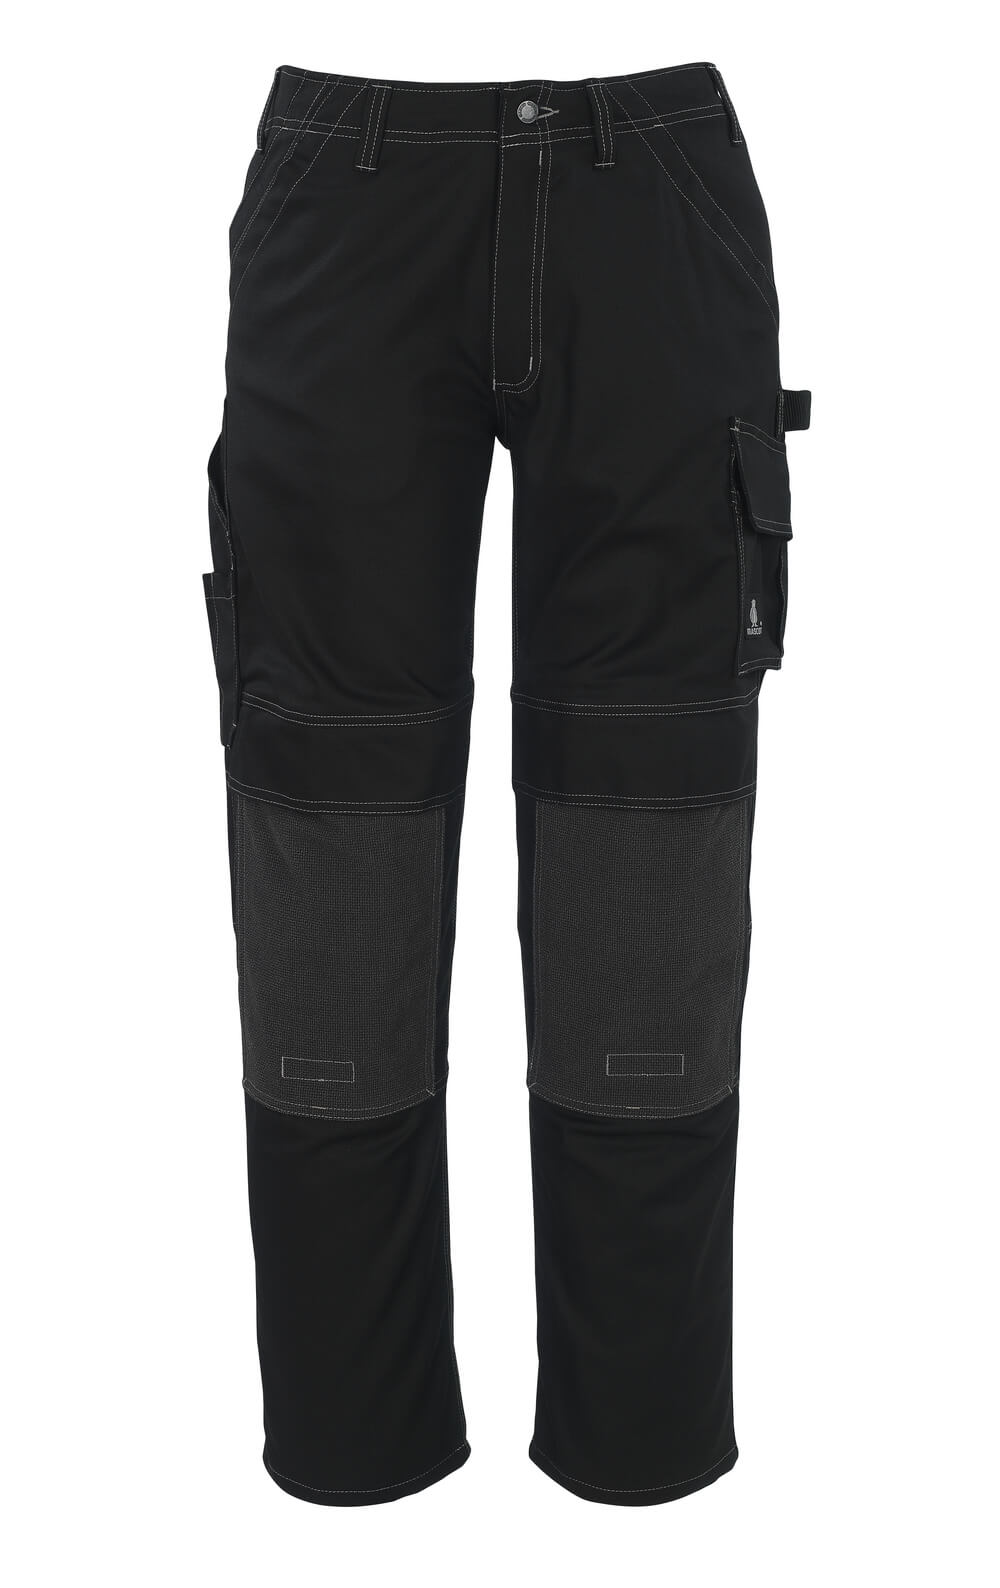 05079-010-09 Trousers with kneepad pockets - black